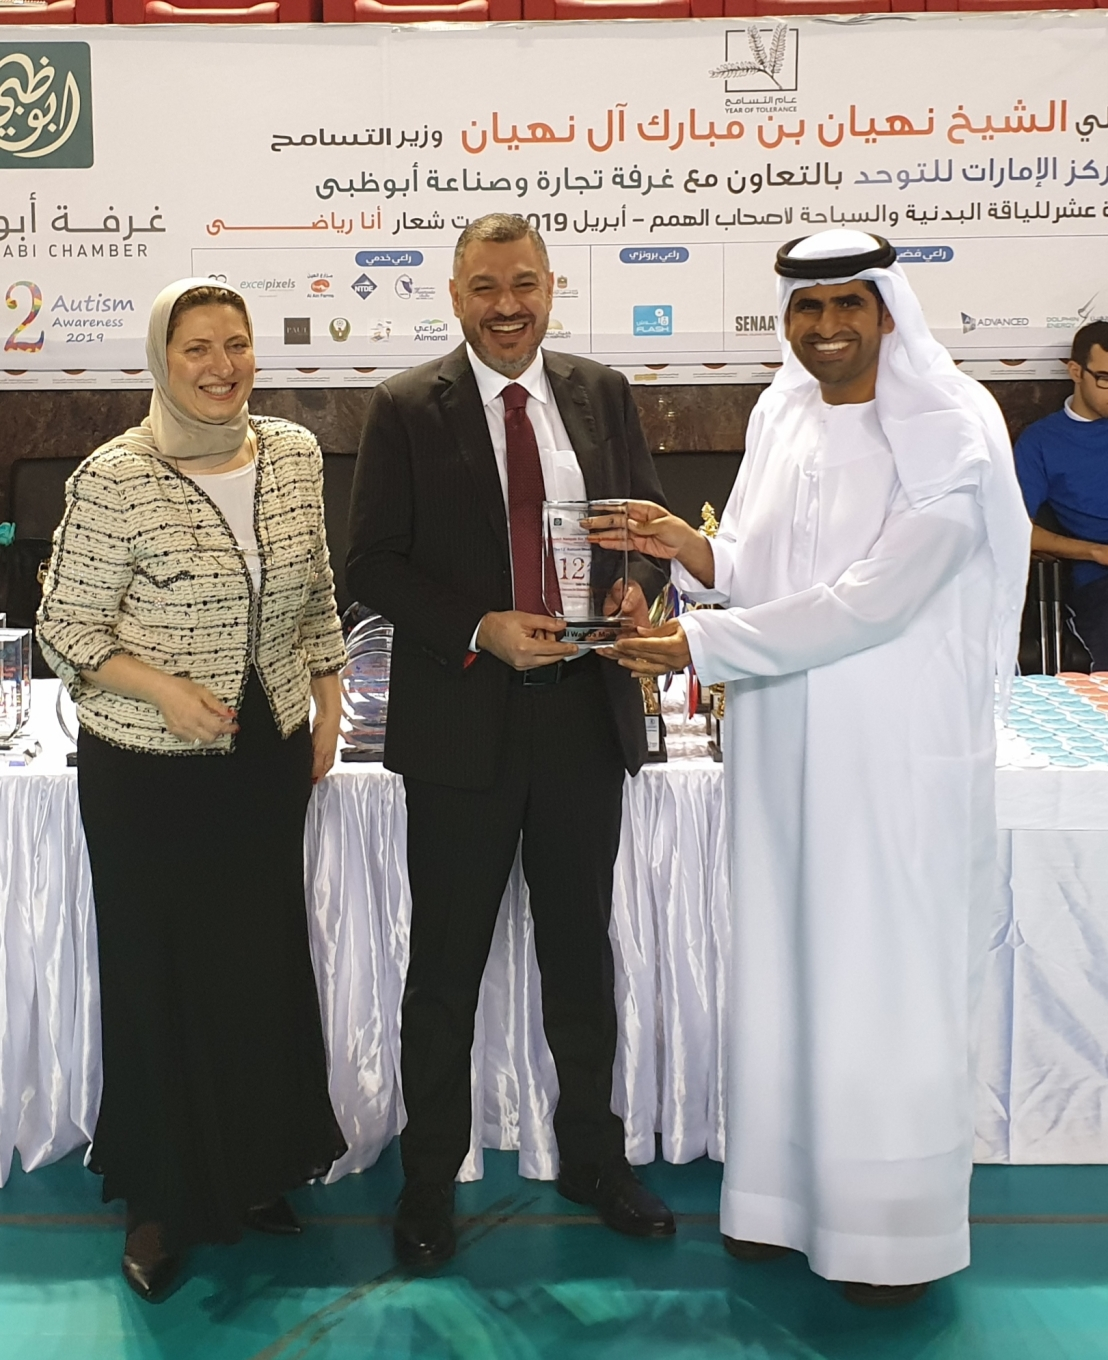 Al Wahda Mall awarded for Autism AwarenessCampaign